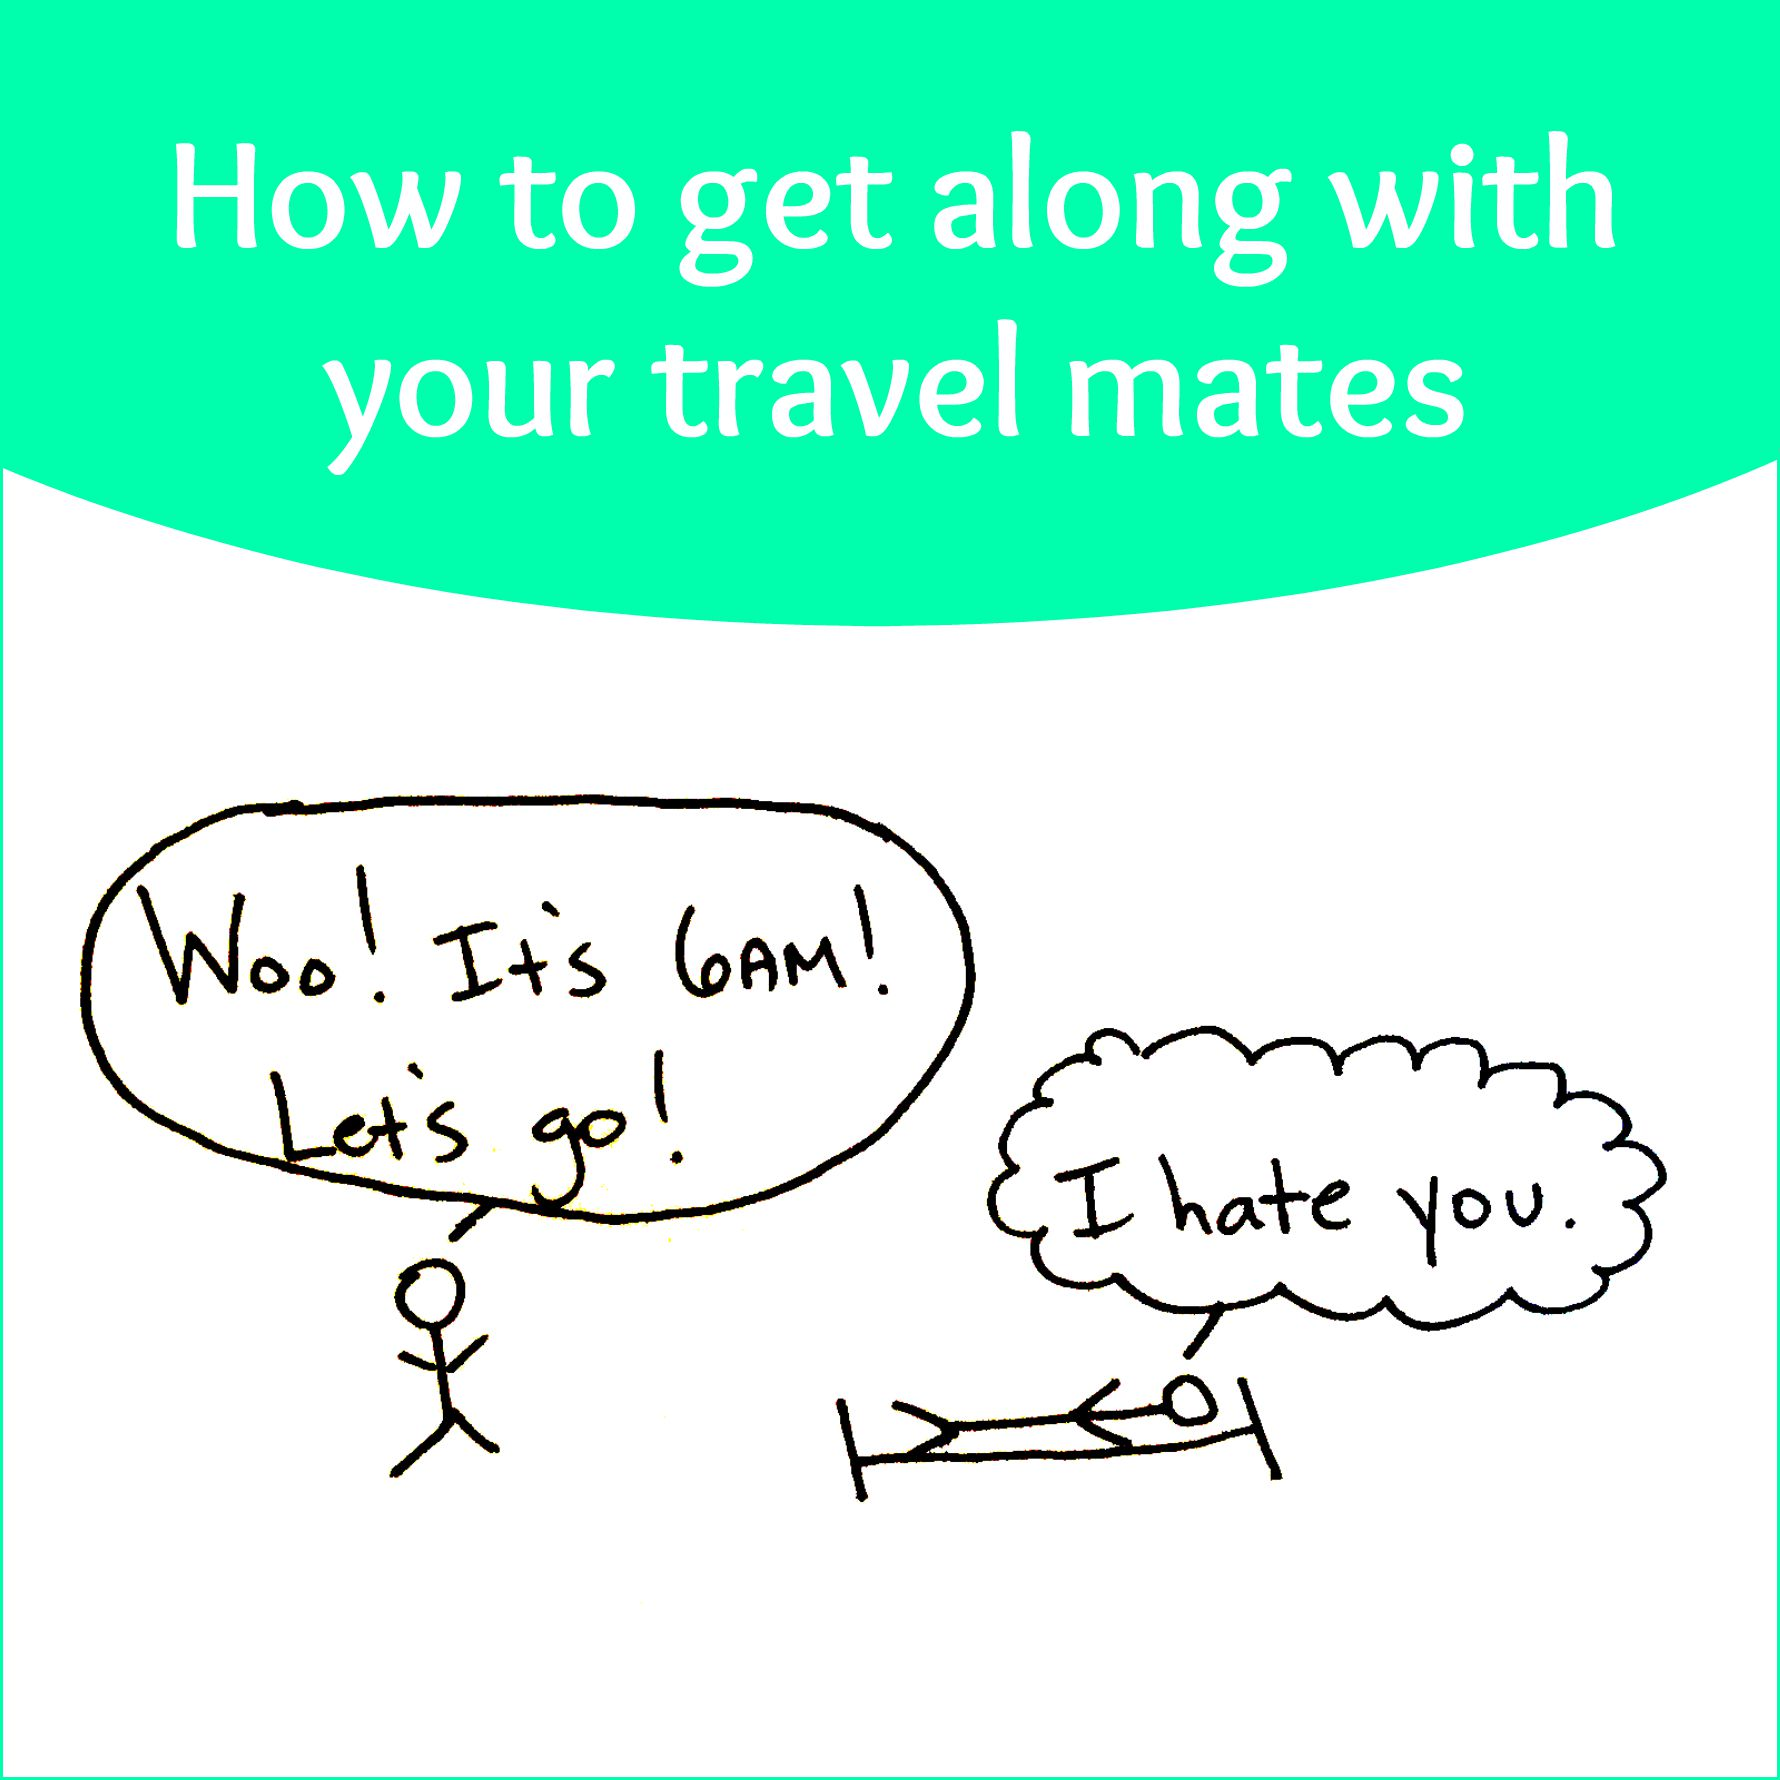 How to get along with your travel mates